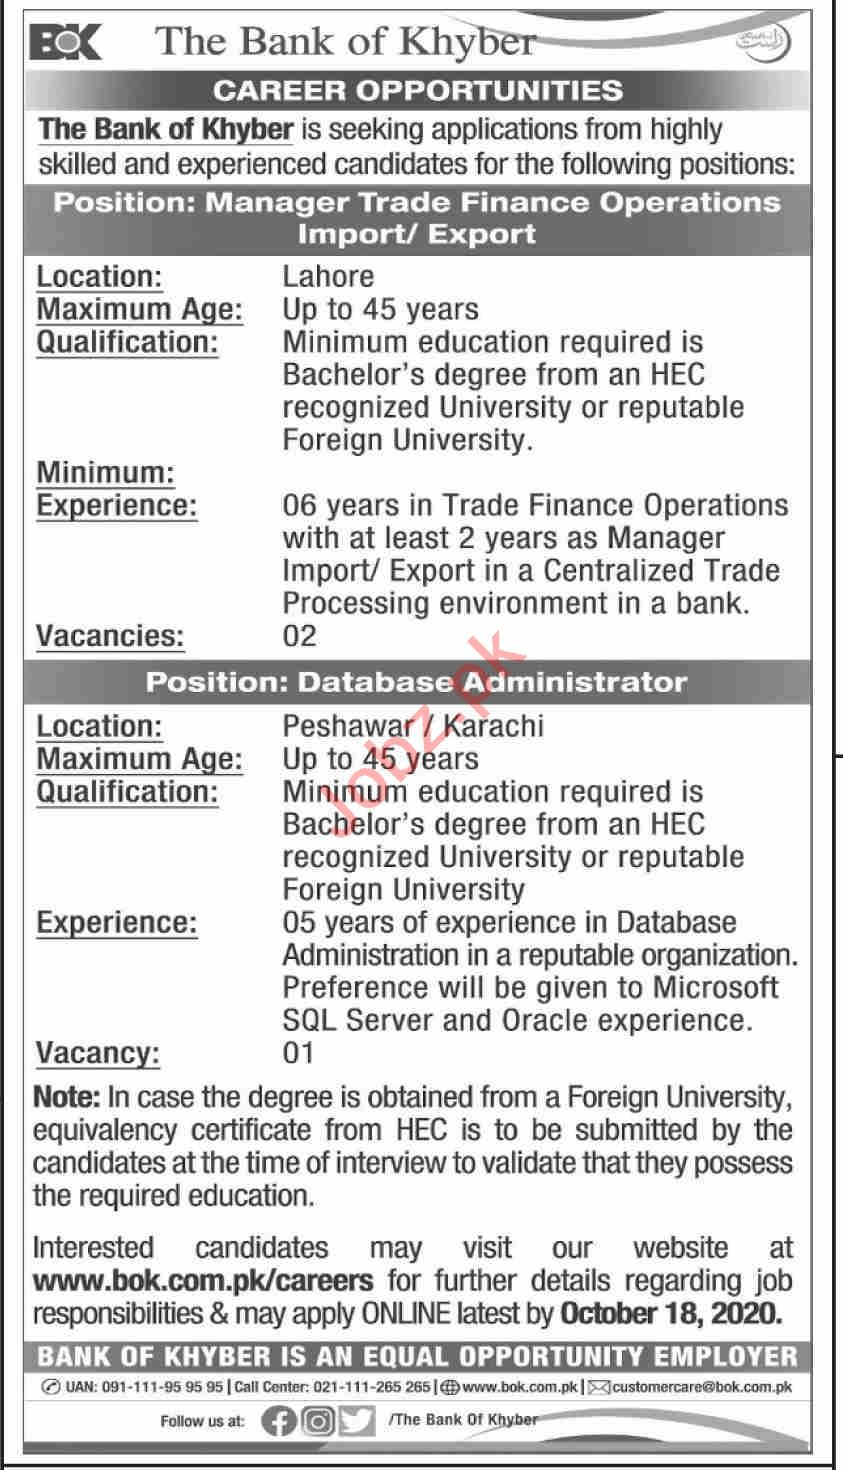 The Bank of Khyber BOK Jobs 2020 for Manager Trade Finance